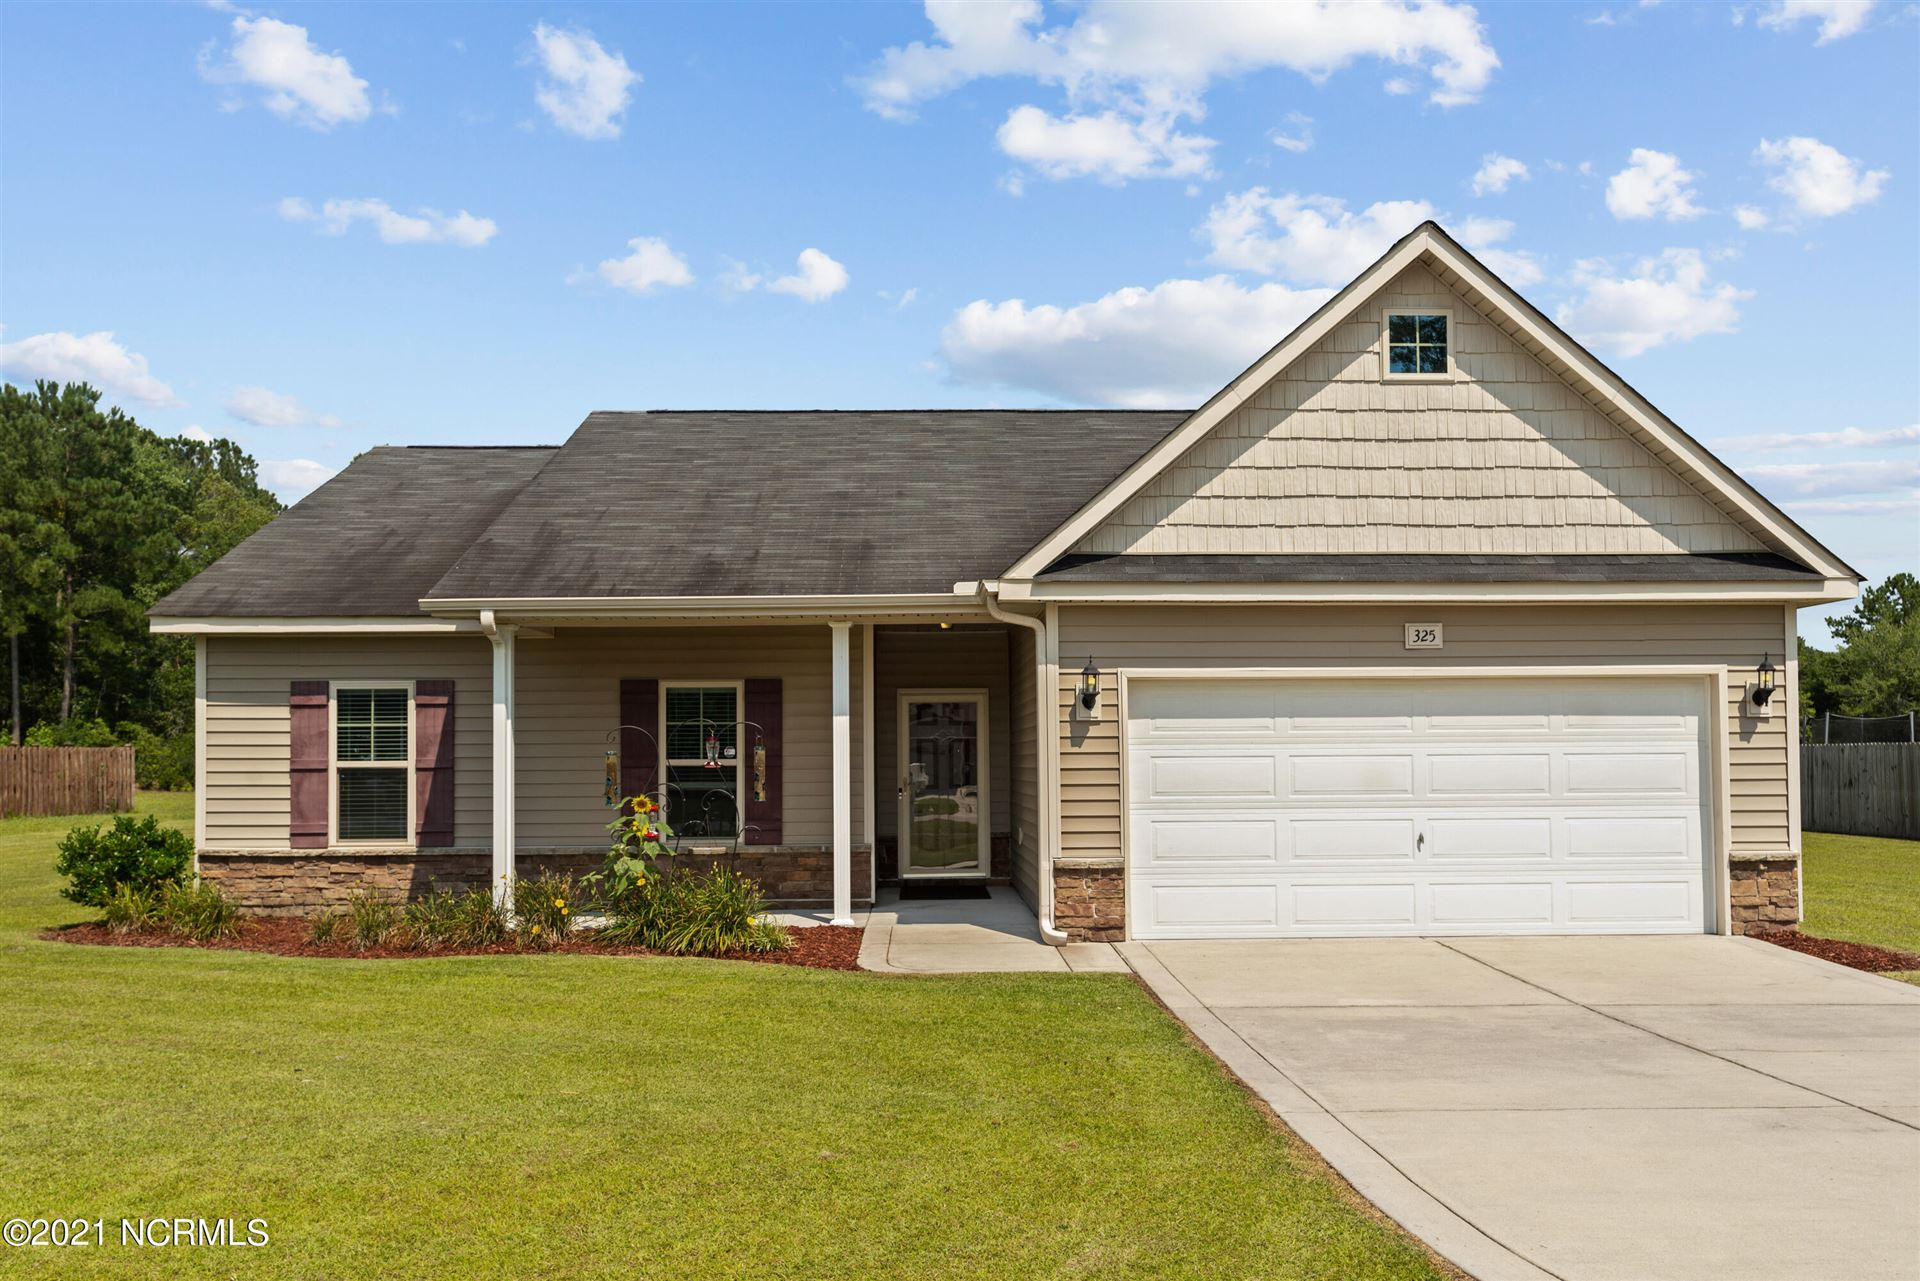 Photo of 325 Breighmere Drive, New Bern, NC 28560 (MLS # 100280110)